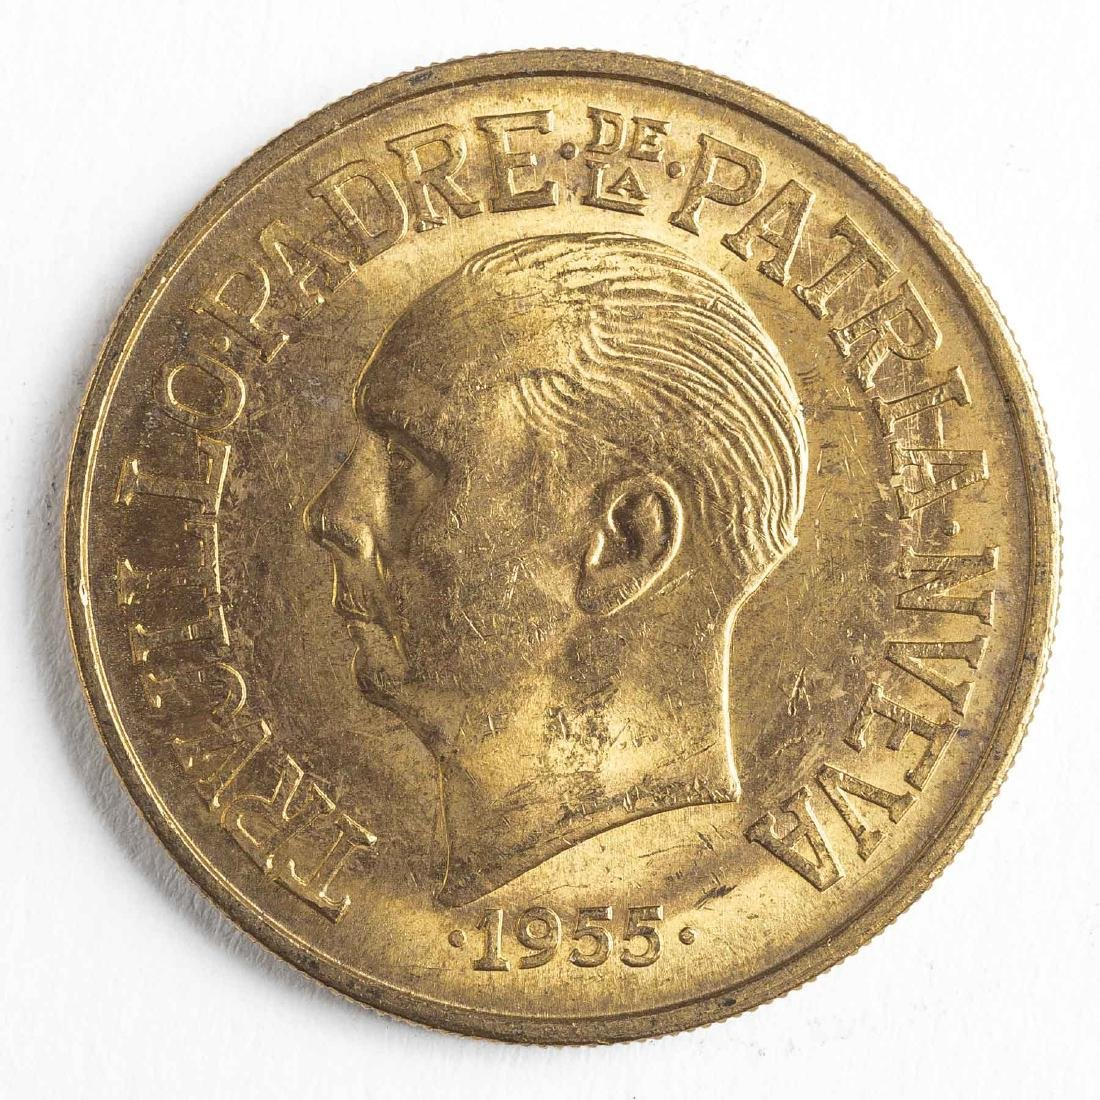 1955 30 Pesos Dominican Gold Coin